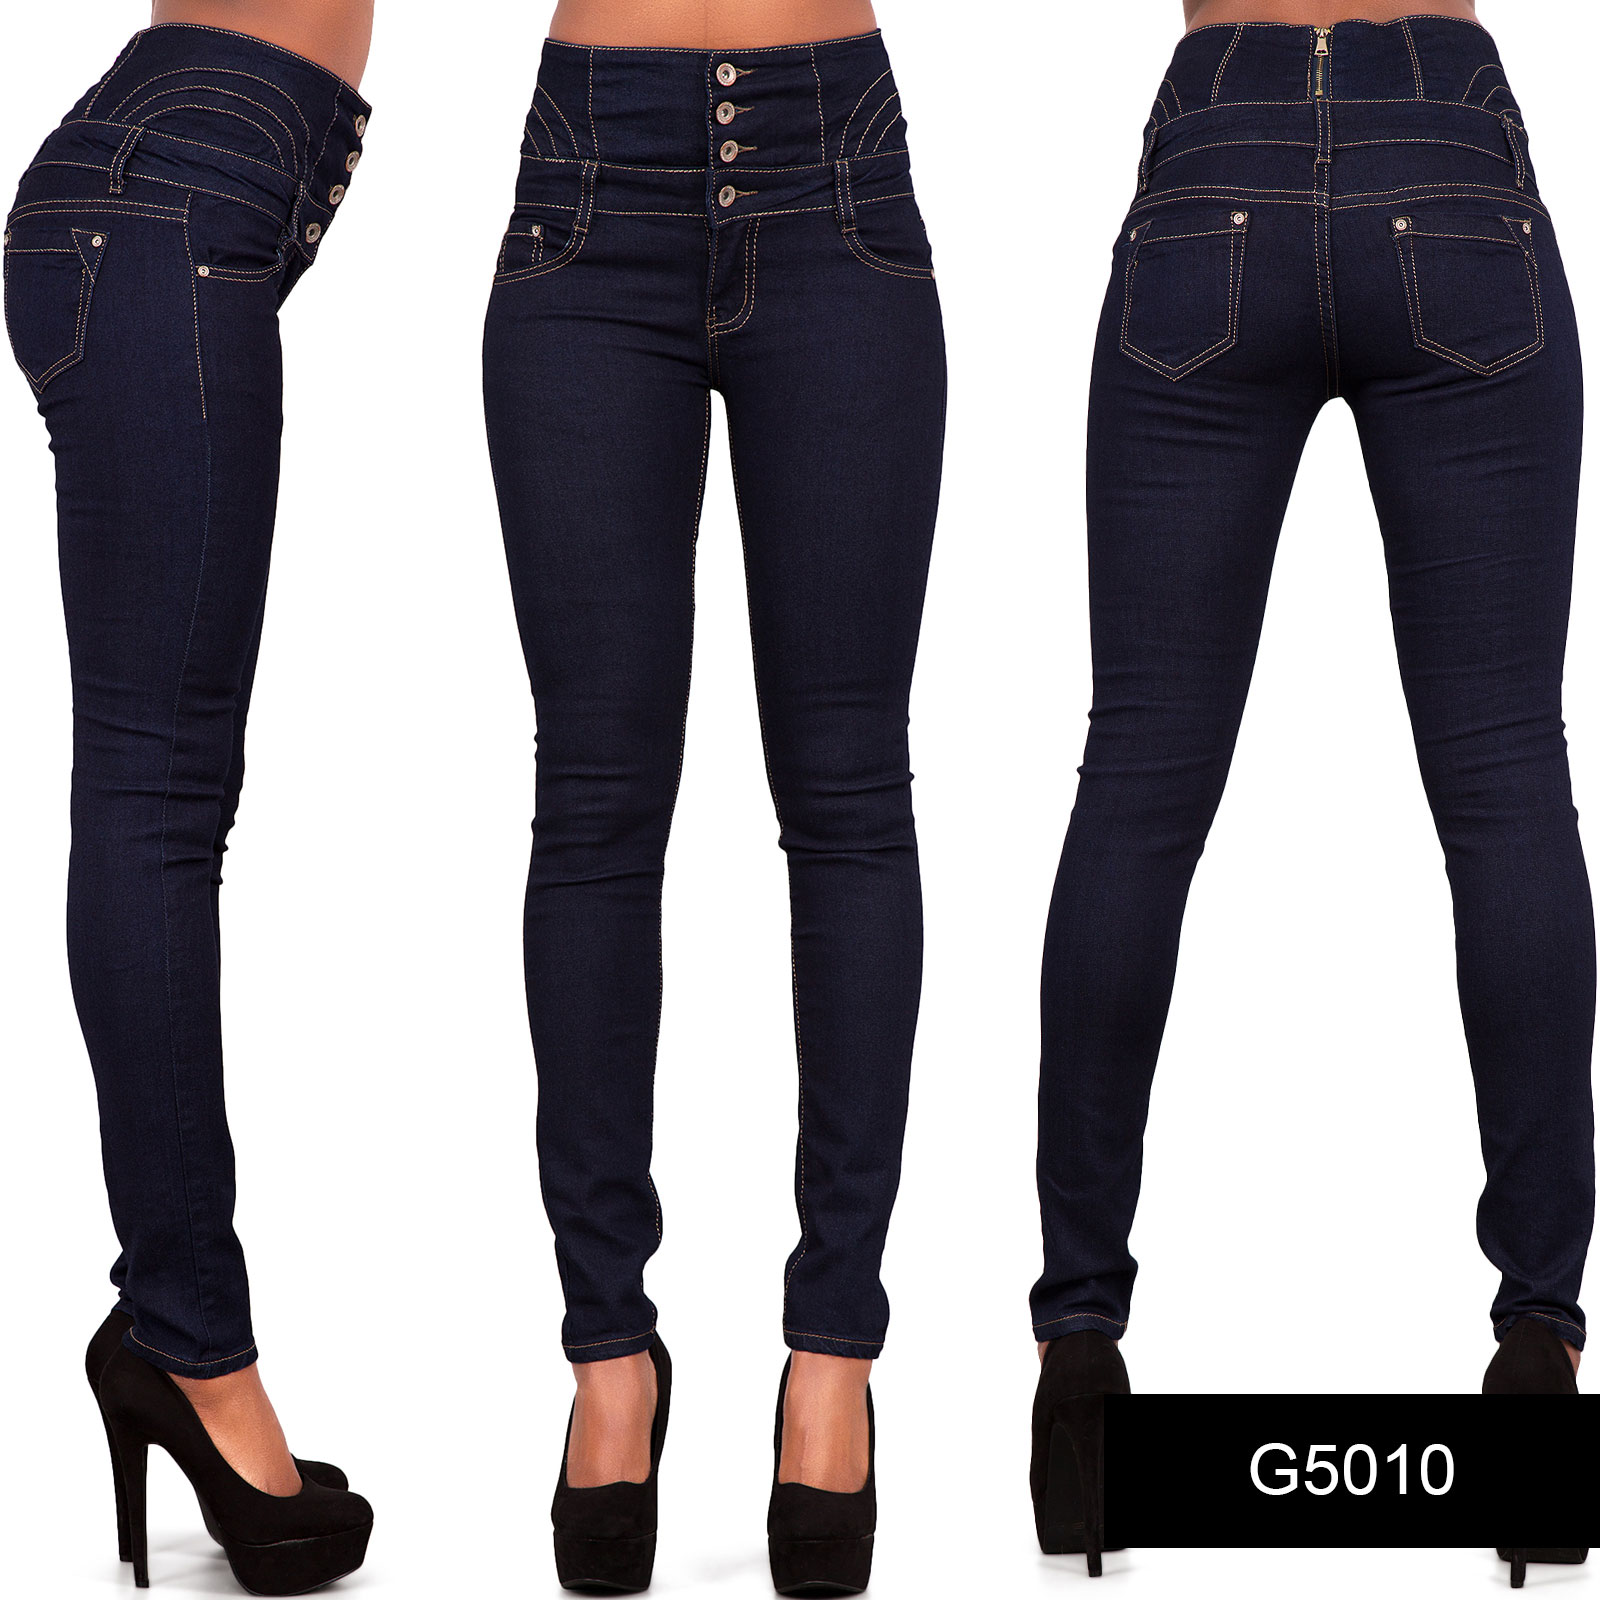 Womens Blue Red White Black High Waist Jeans Skinny Stretch Denim ...